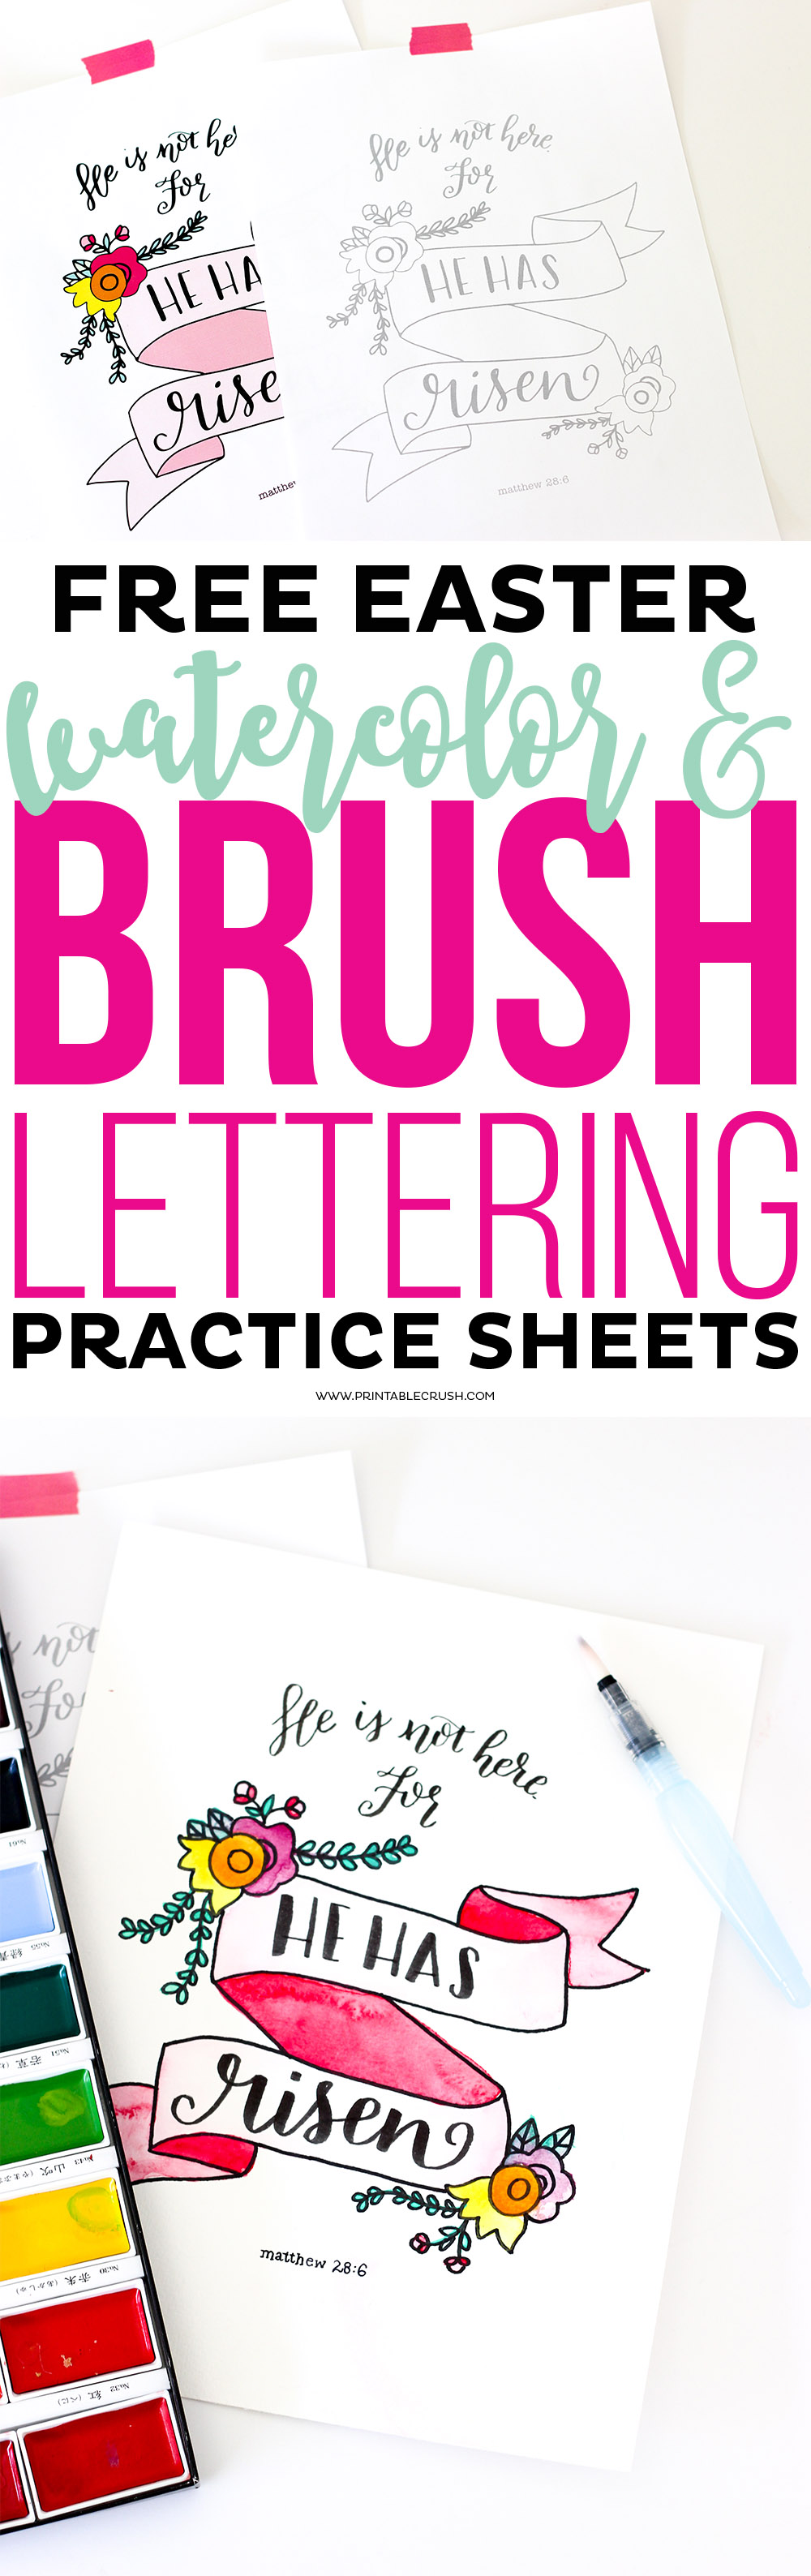 FREE Easter Watercolor and Brush Lettering Practice Sheets ...